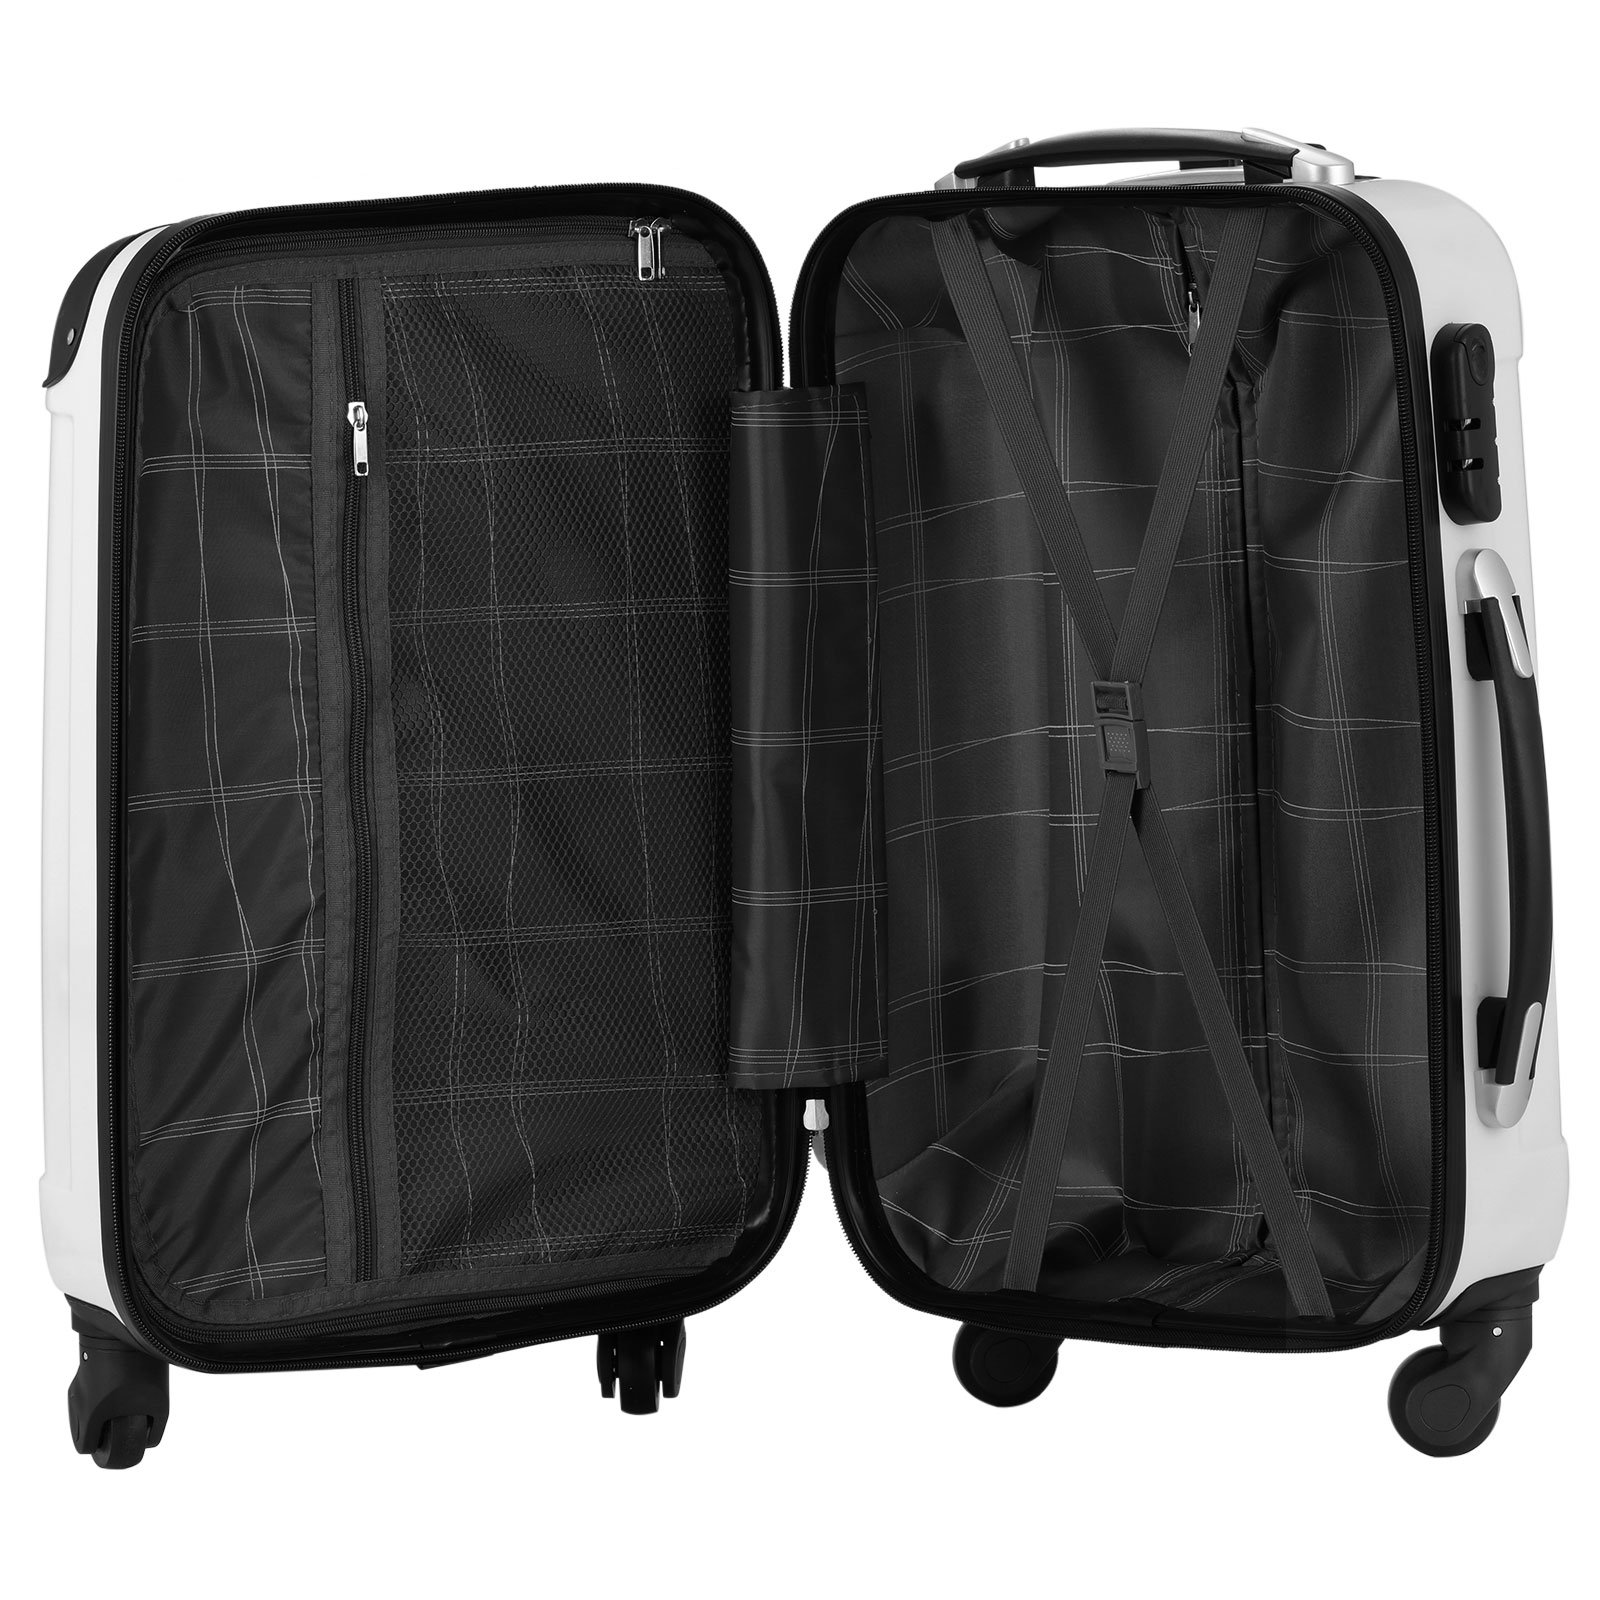 3 piece luggage set white travel spinner abs pc trolley carry on suitcase ebay. Black Bedroom Furniture Sets. Home Design Ideas